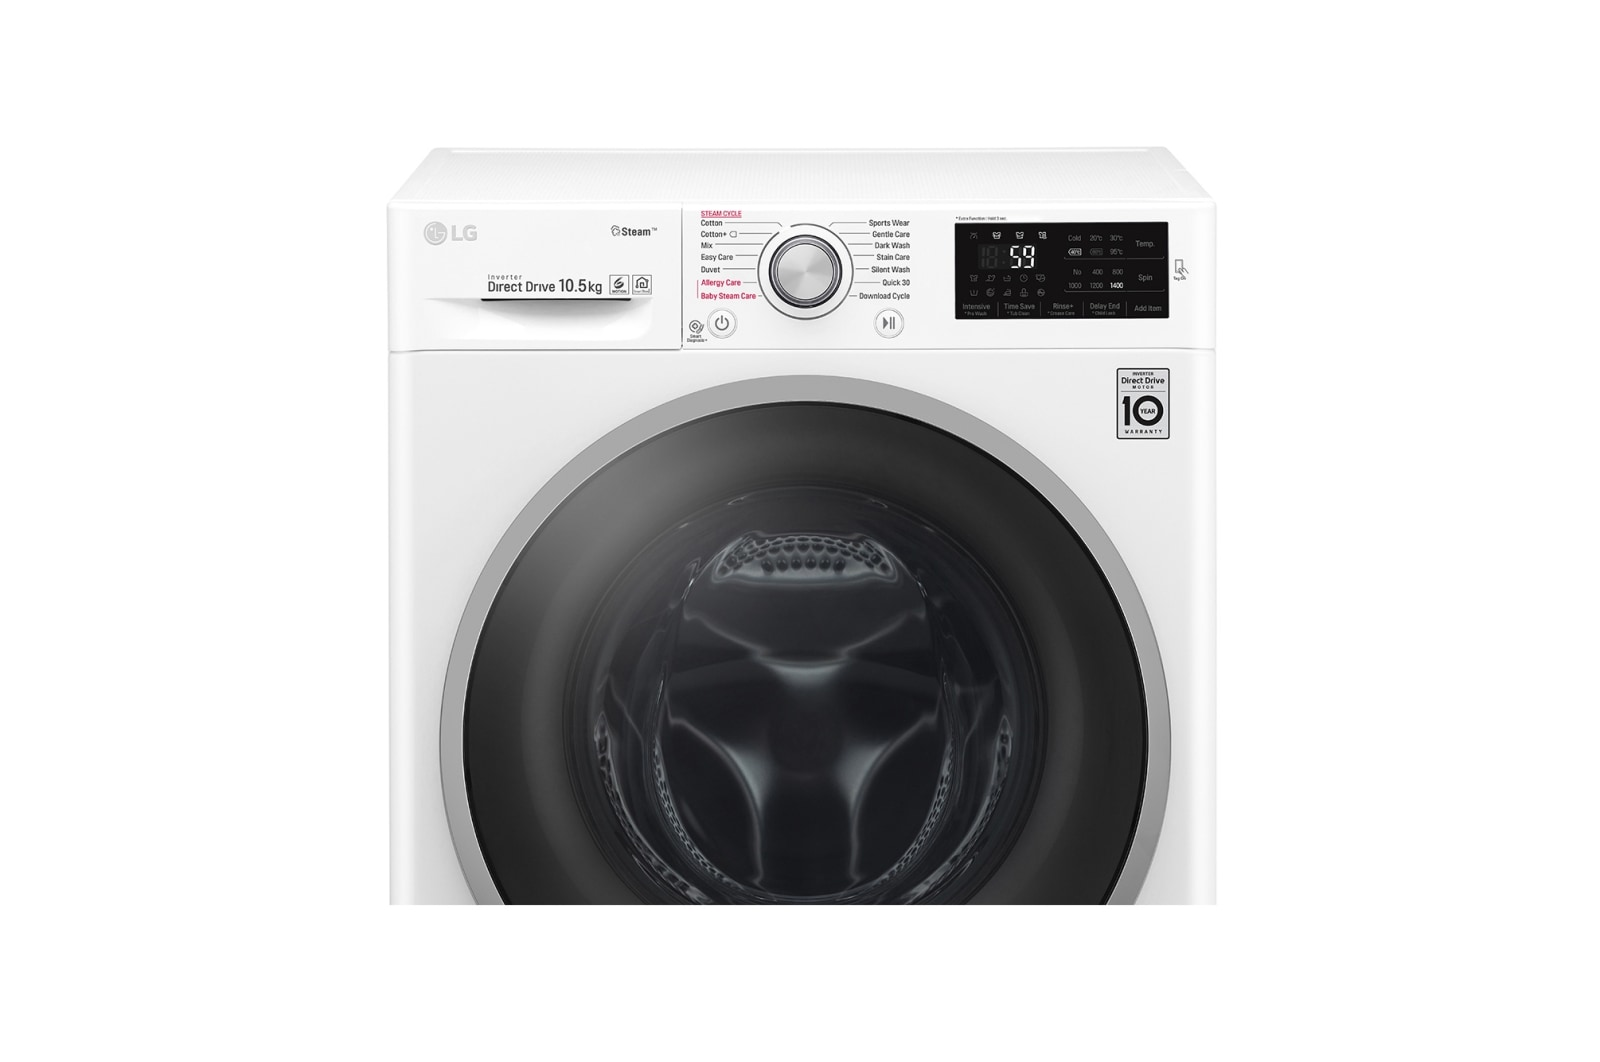 LG 10 5kg 6 Motion Direct Drive Washing Machine with Steam™ | LG